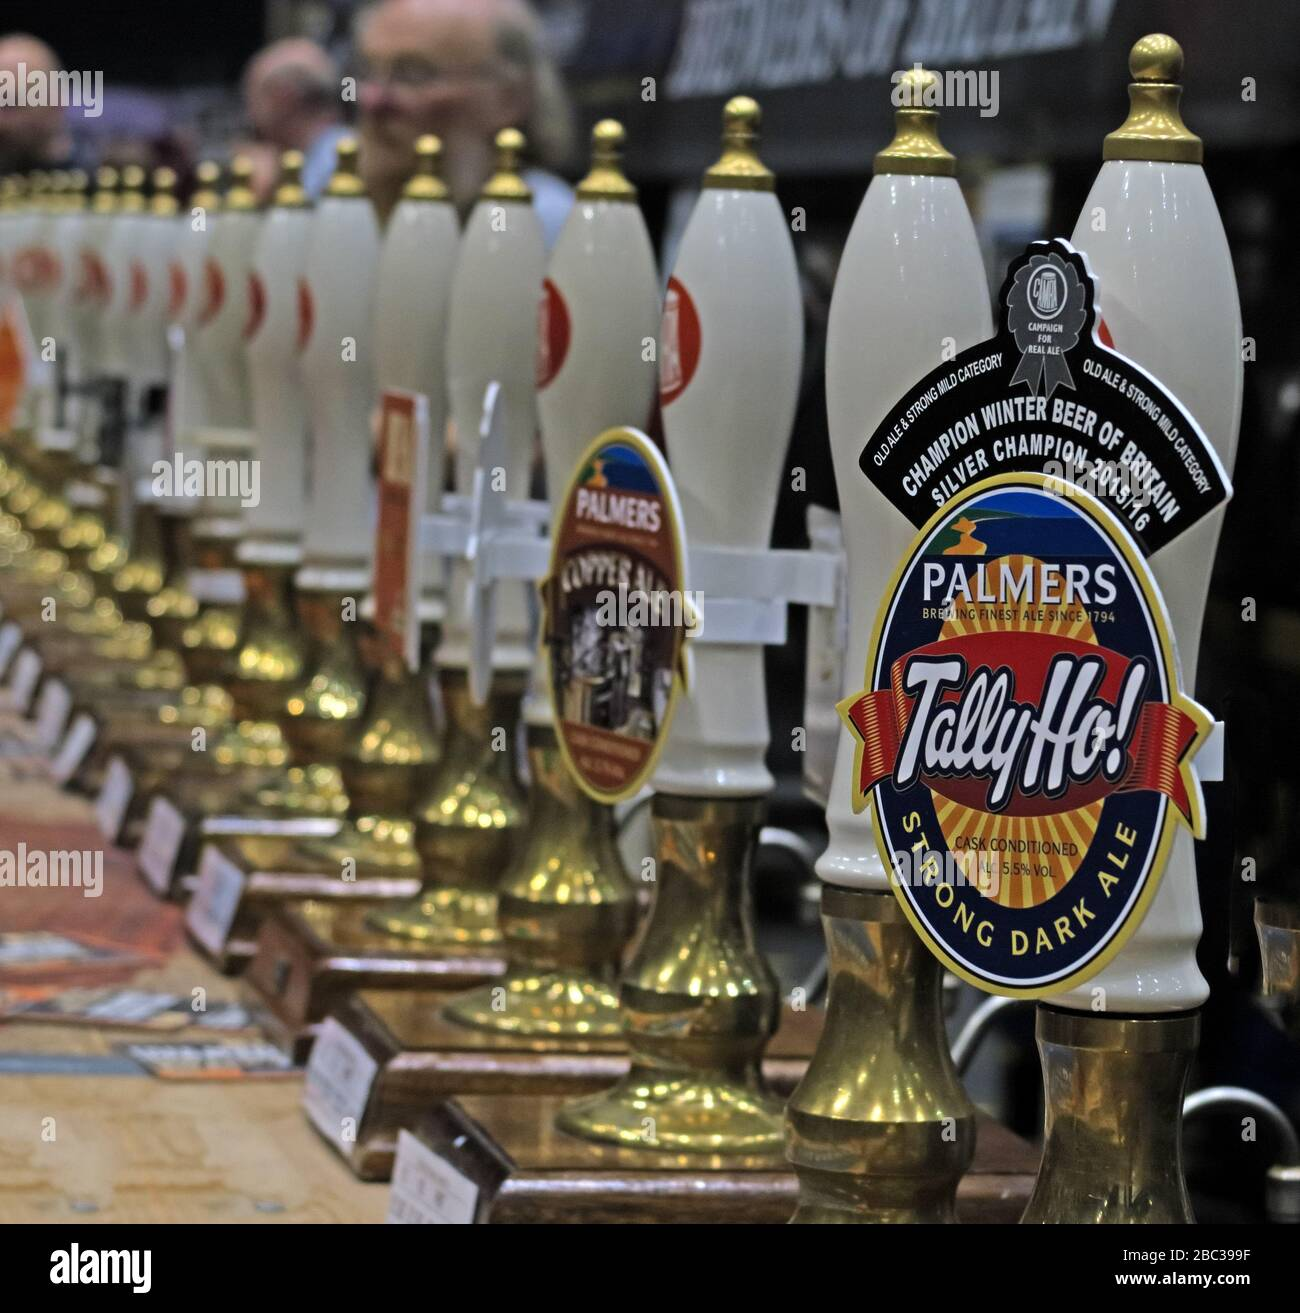 Dieses Stockfoto: Tally Ho, Strong Dark Ale, Champion Winter Beer of Britain, beim Manchester Beer Festival, Manchester Central 2017 - 2BC399